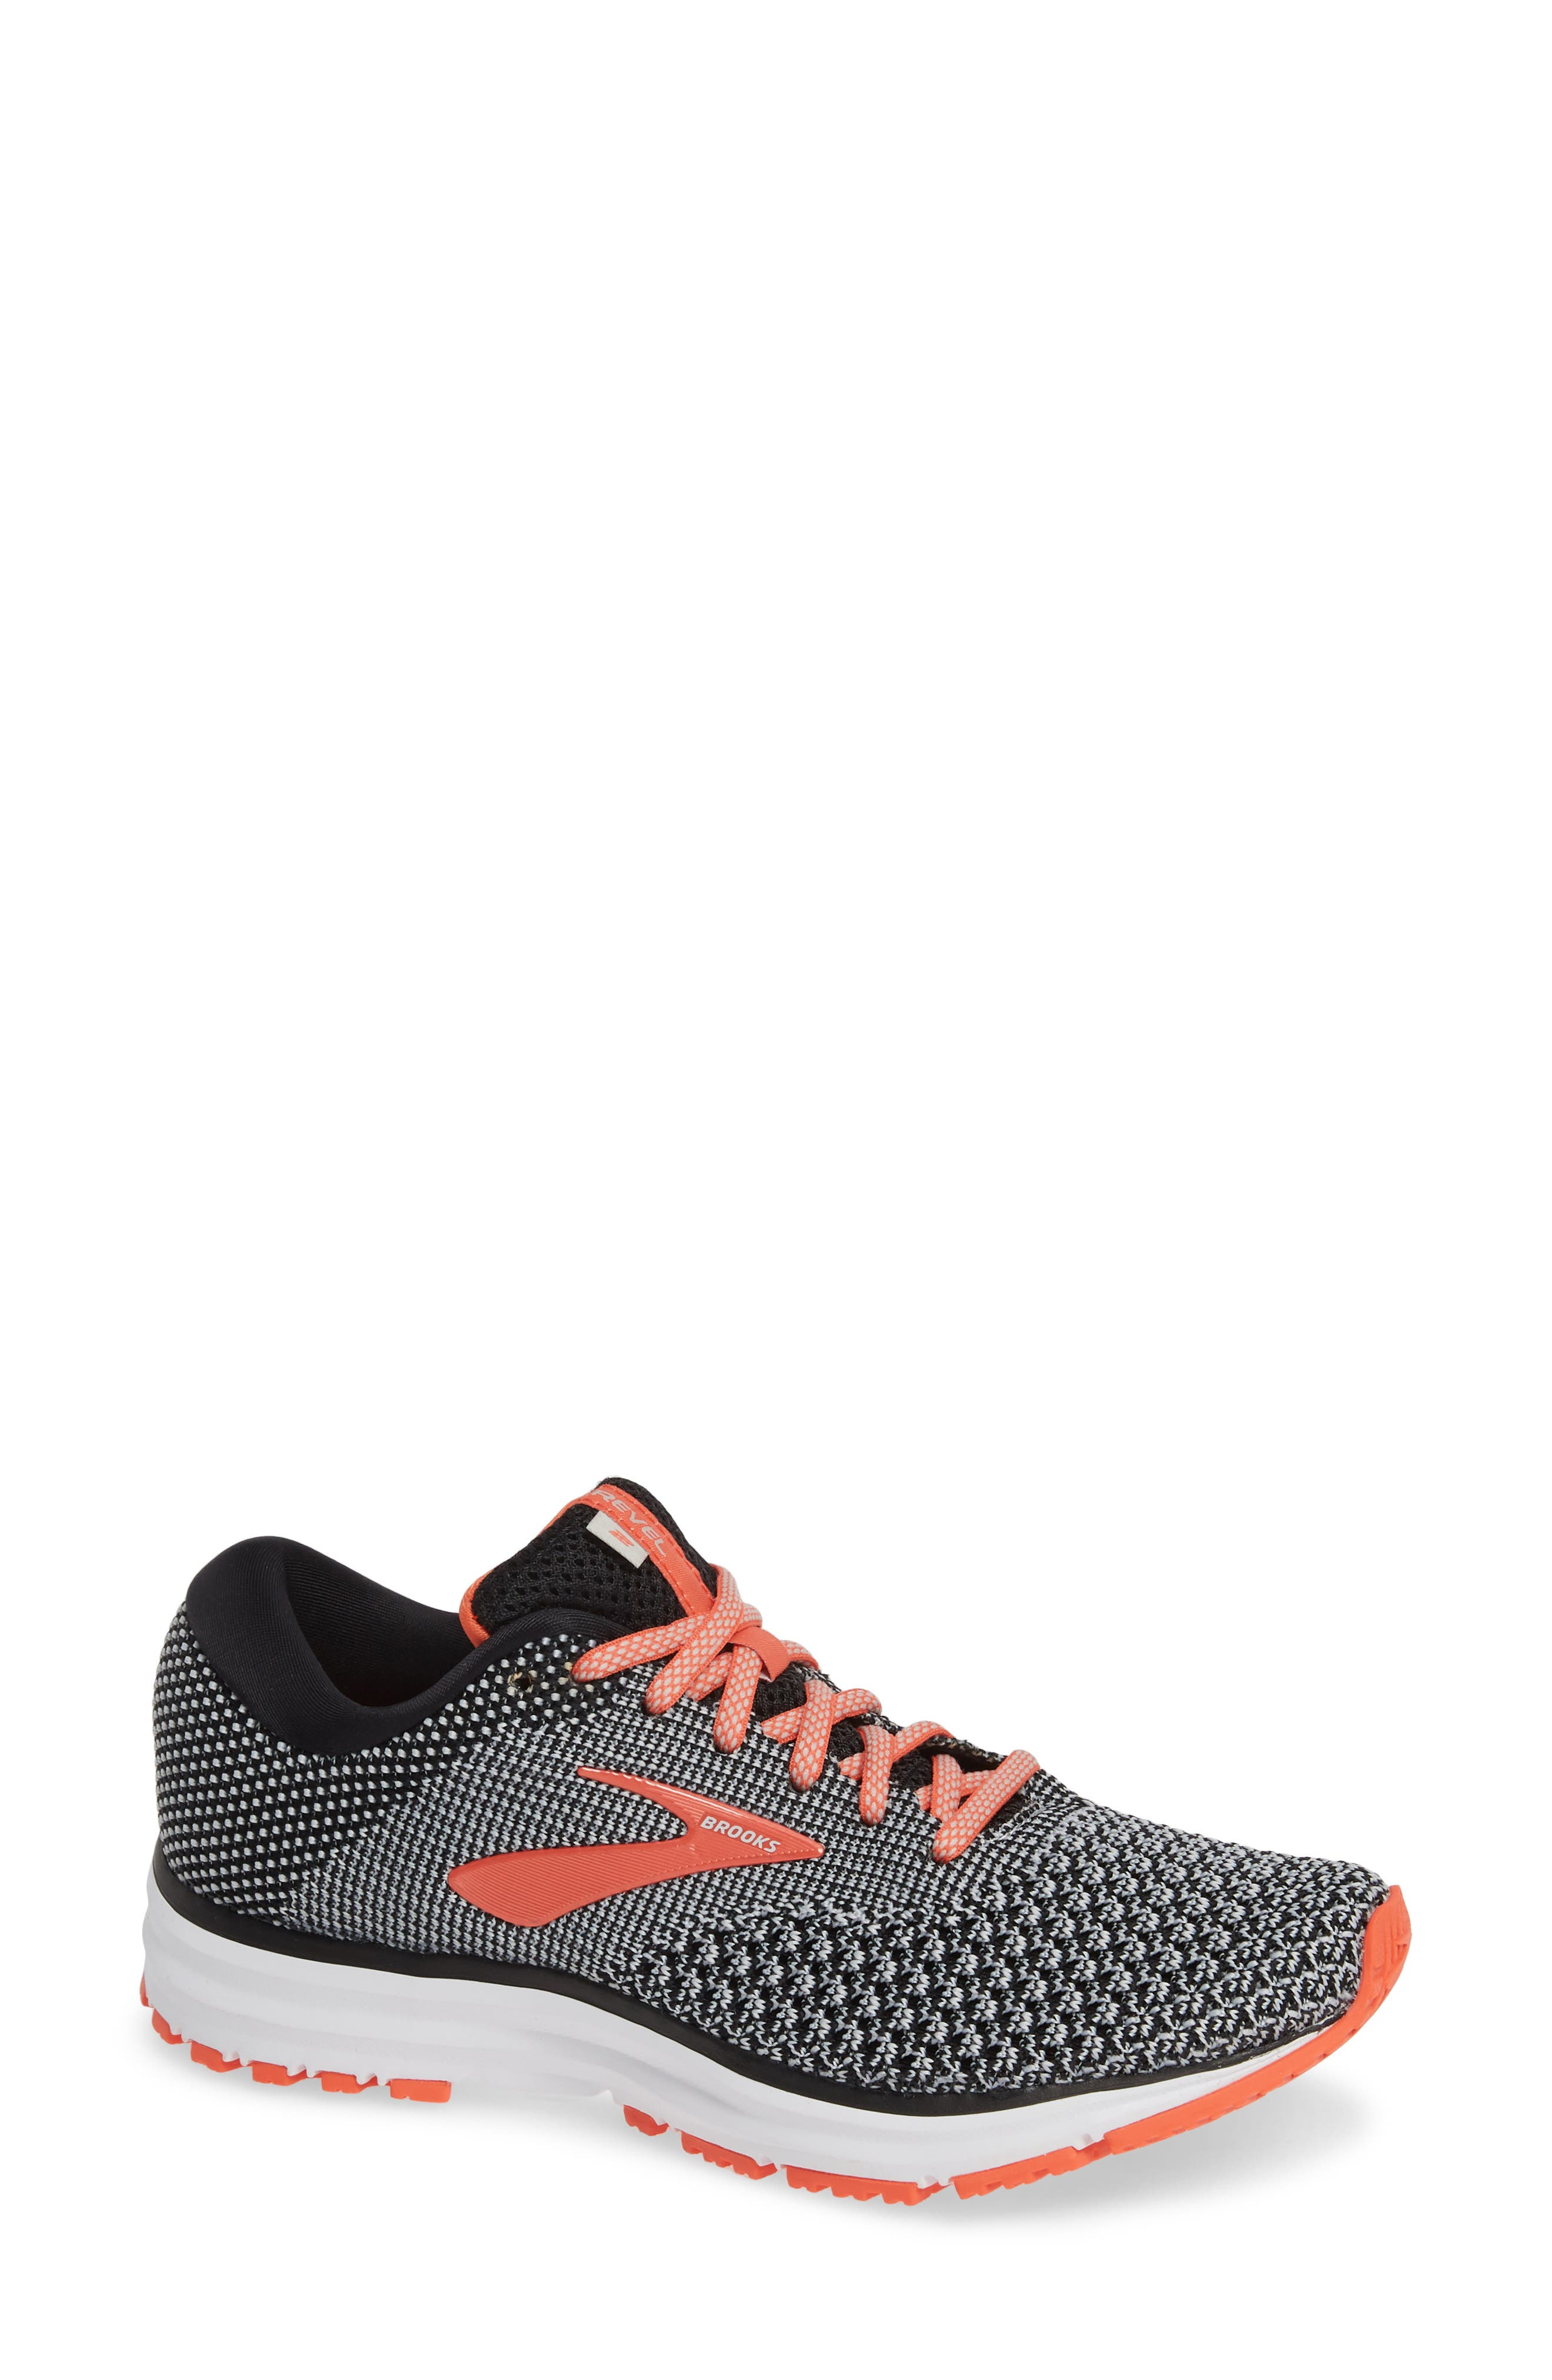 Revel 2 Running Shoe,                         Main,                         color, BLACK/ LIGHT GREY/ CORAL